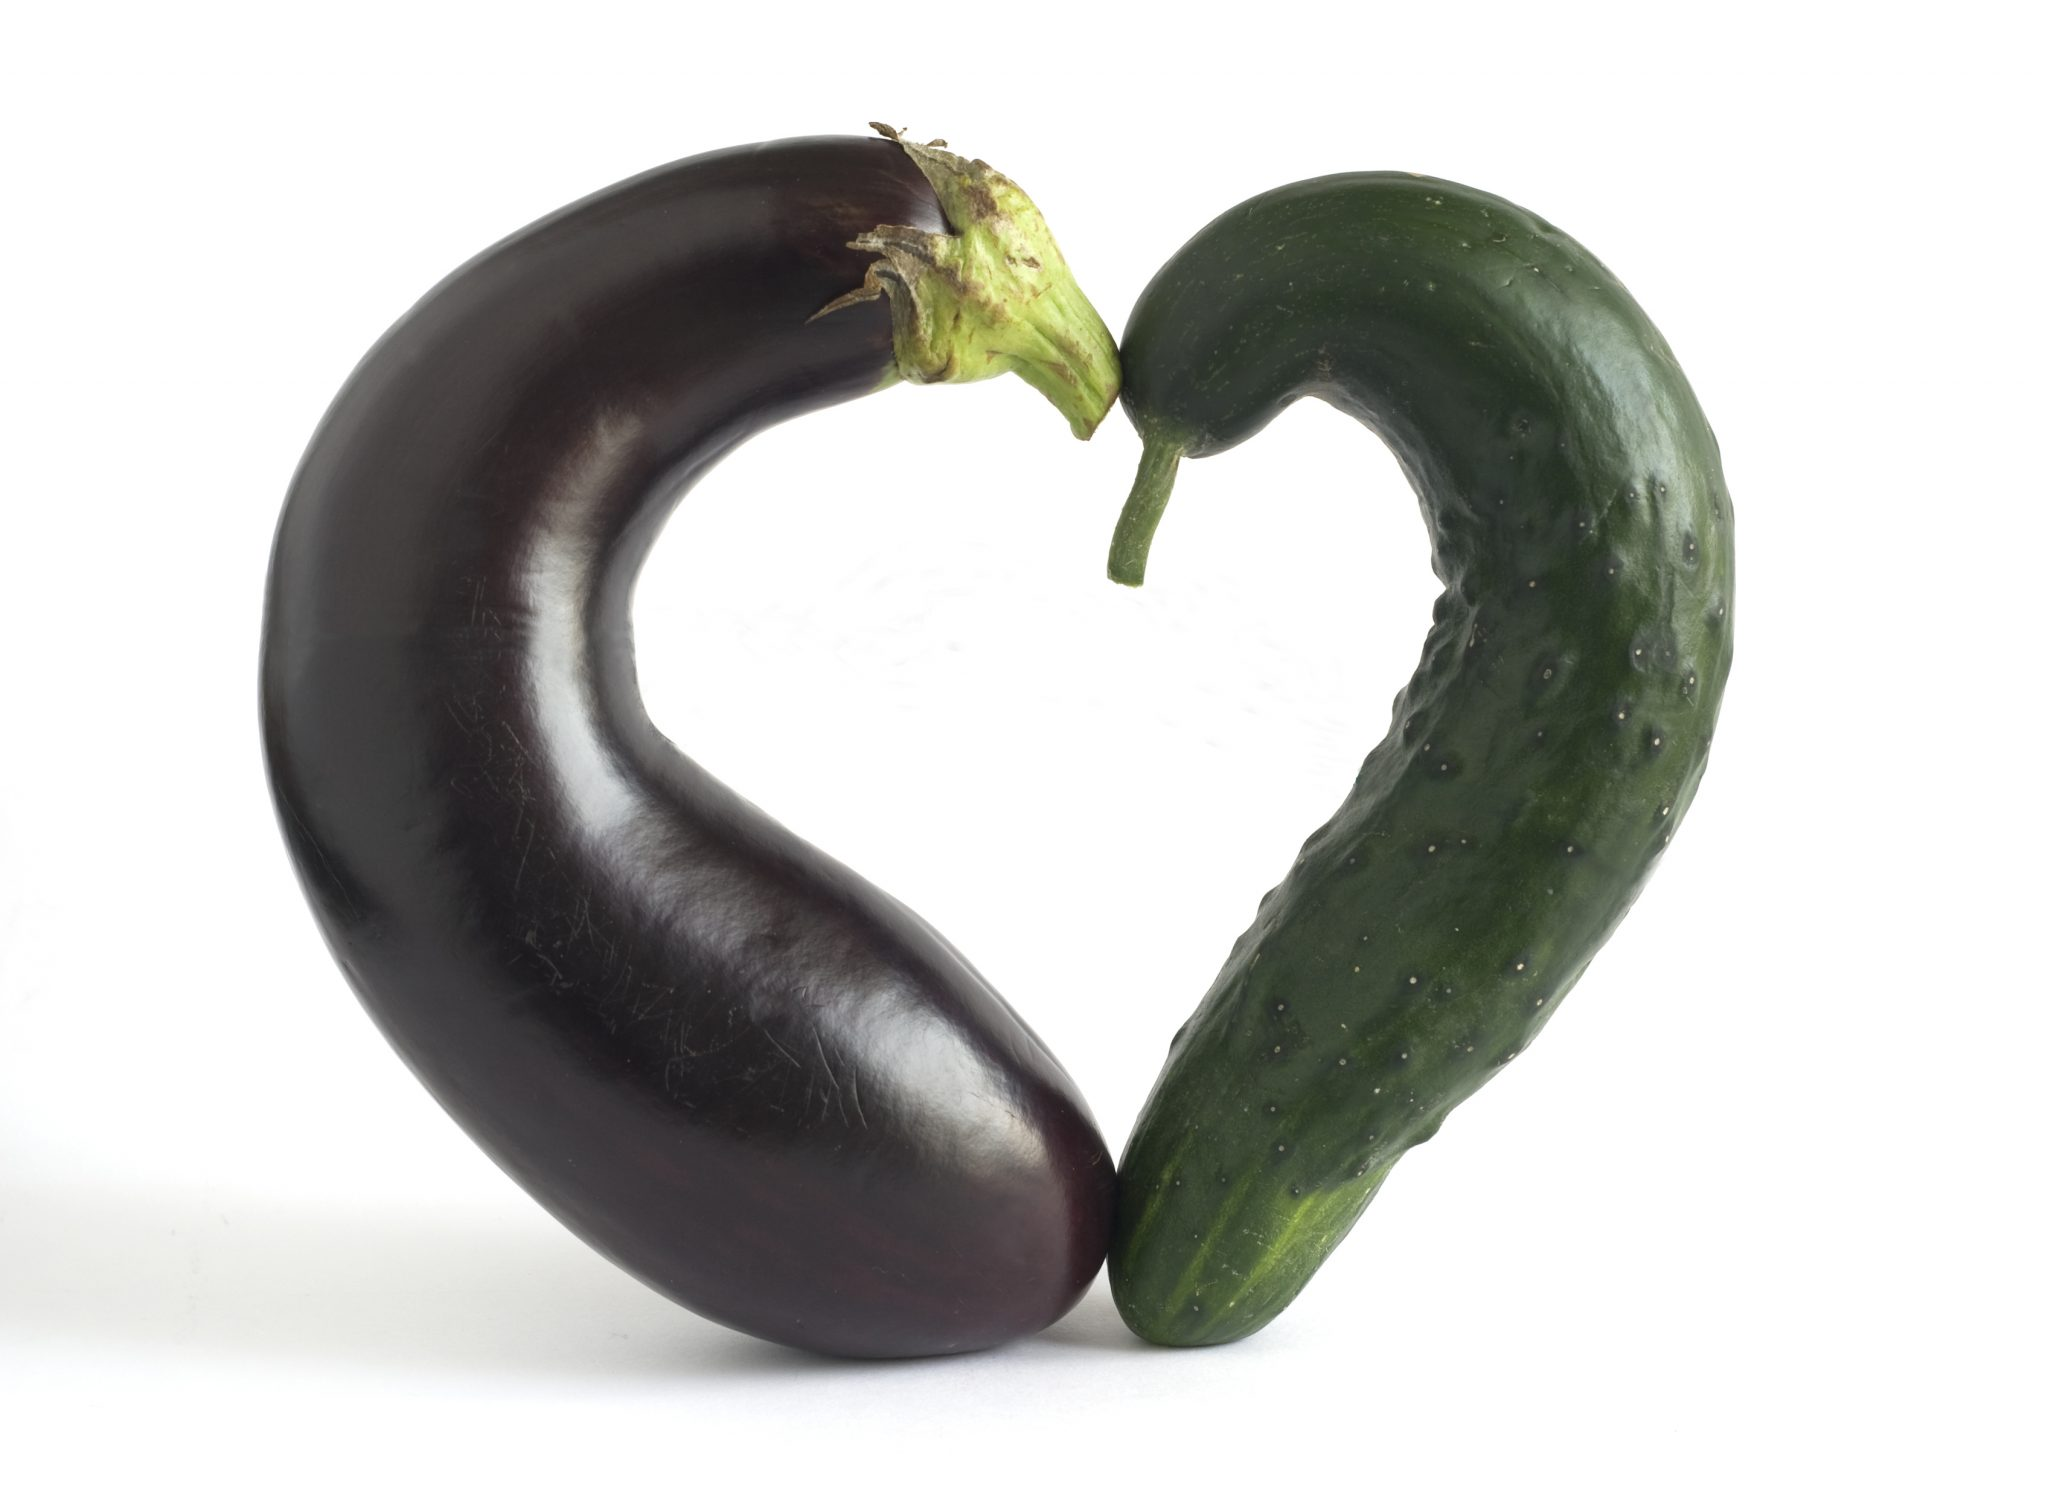 Vegetables Heart © iStock/getty images